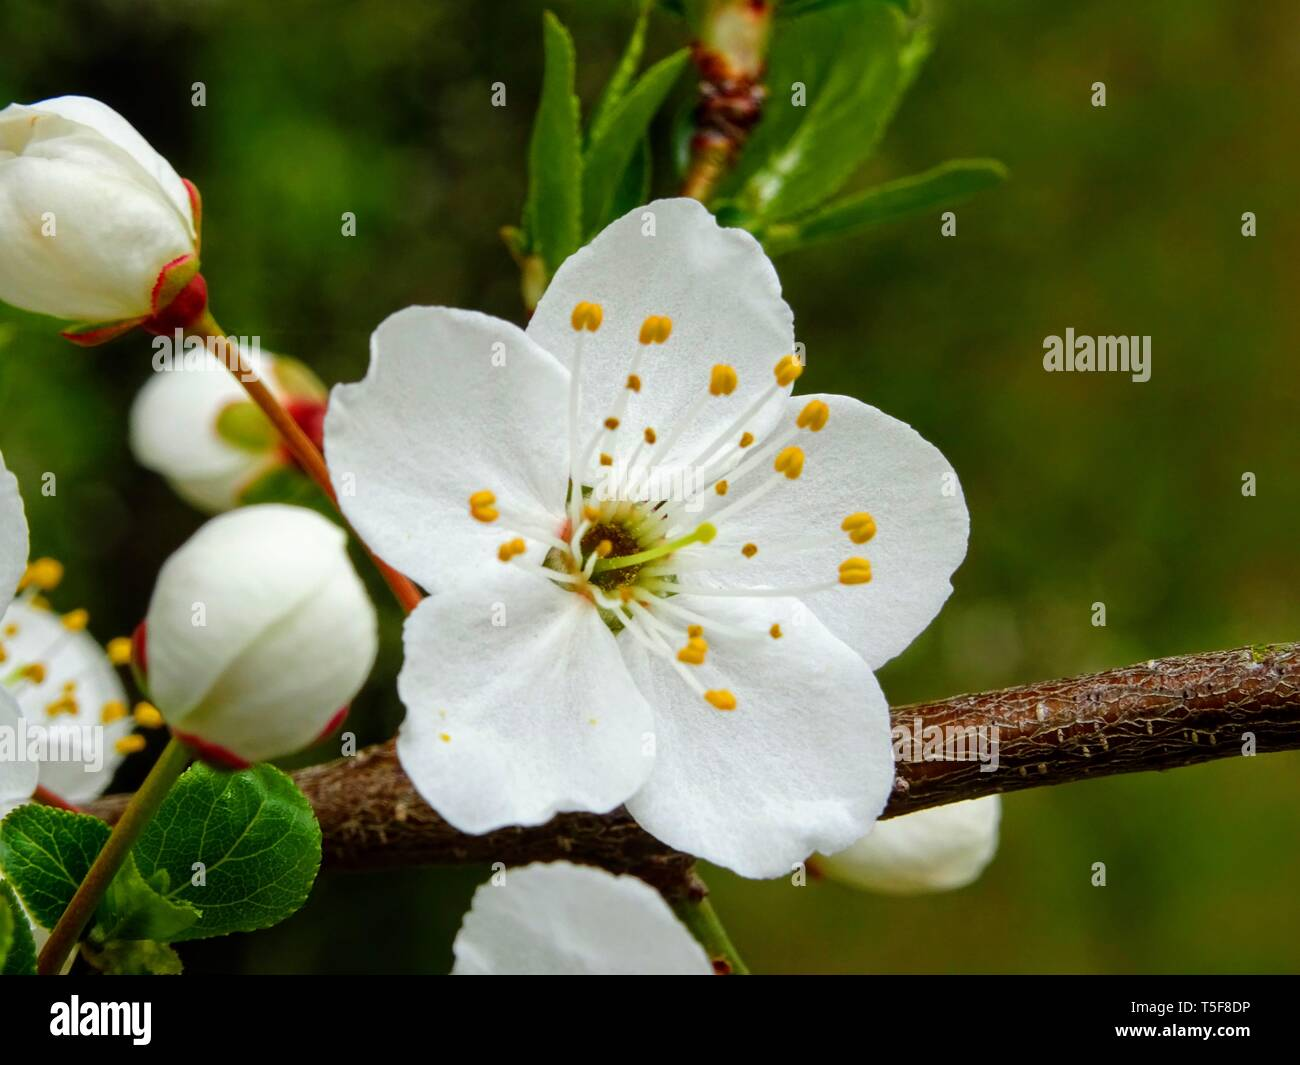 beautiful pure white and fragrant fruit tree blossoms in spring - Stock Image